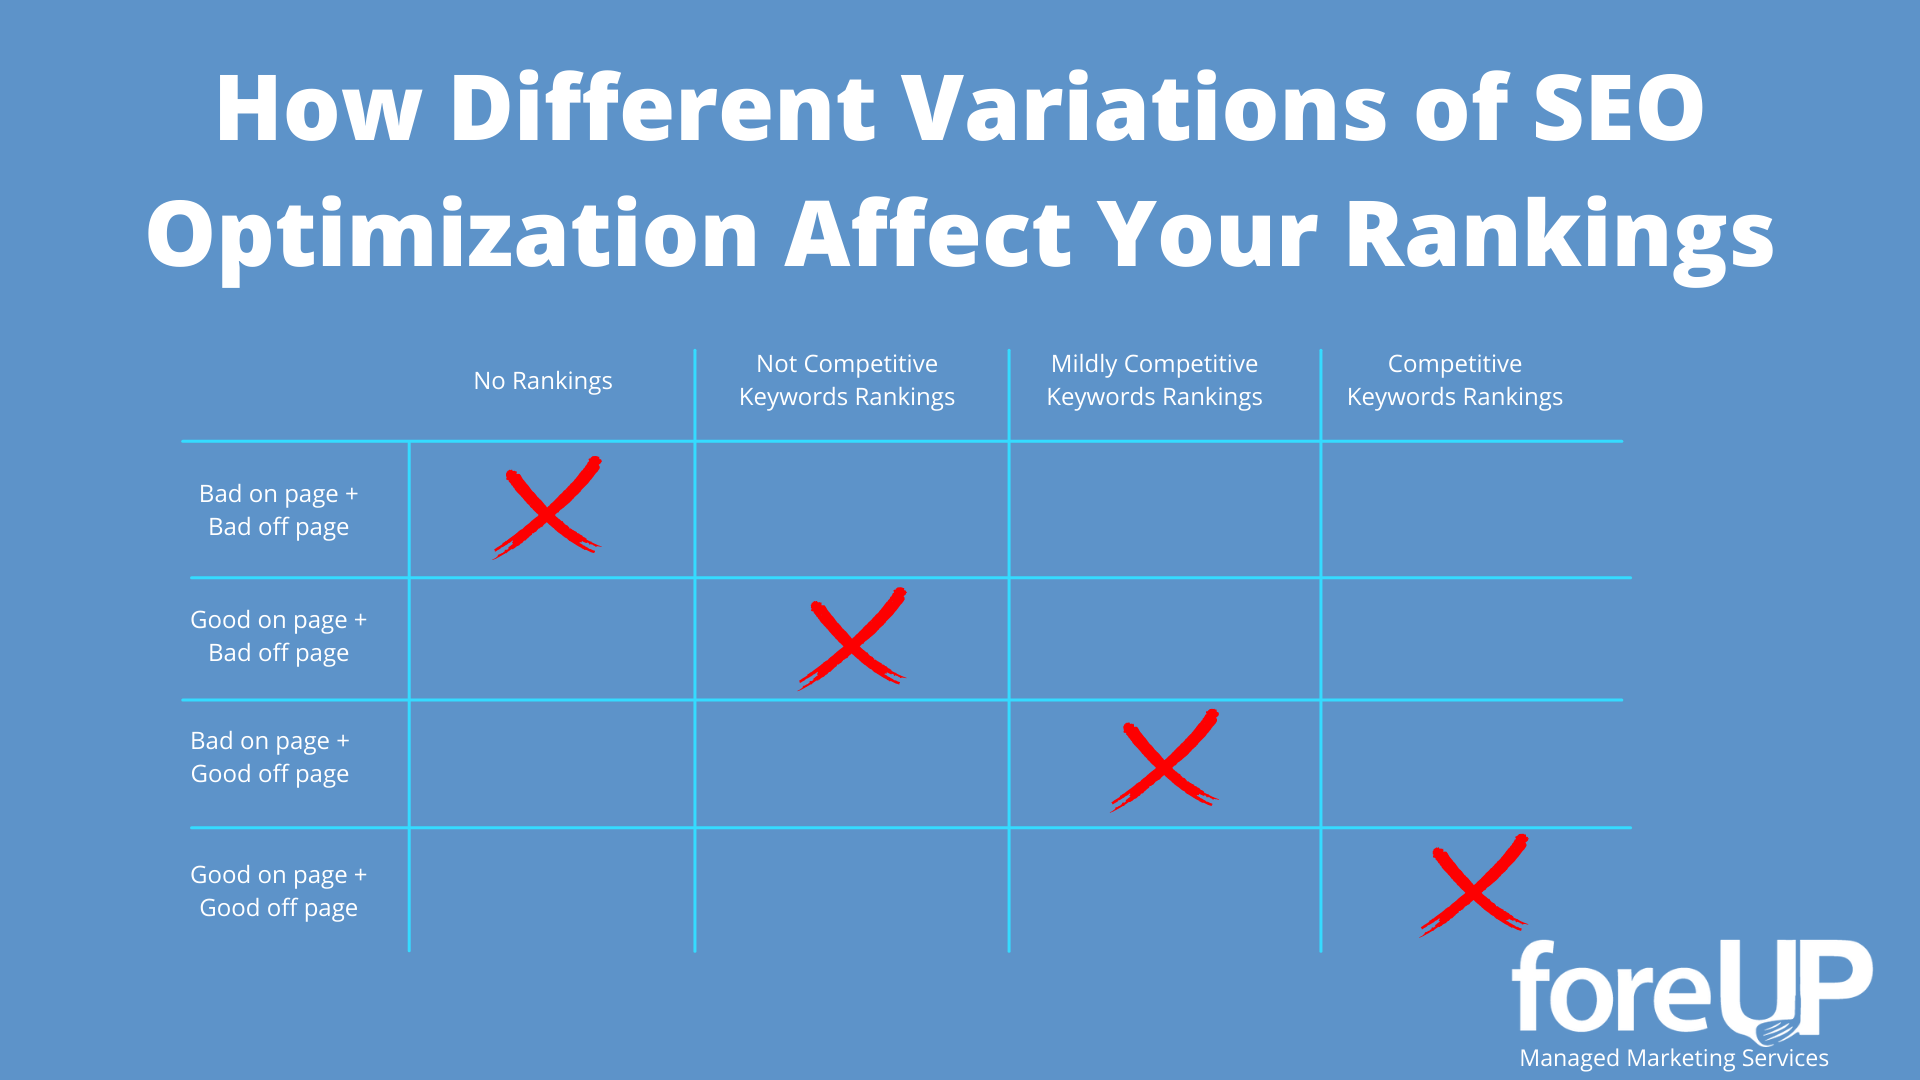 SEO Optimization Affect Your Rankings